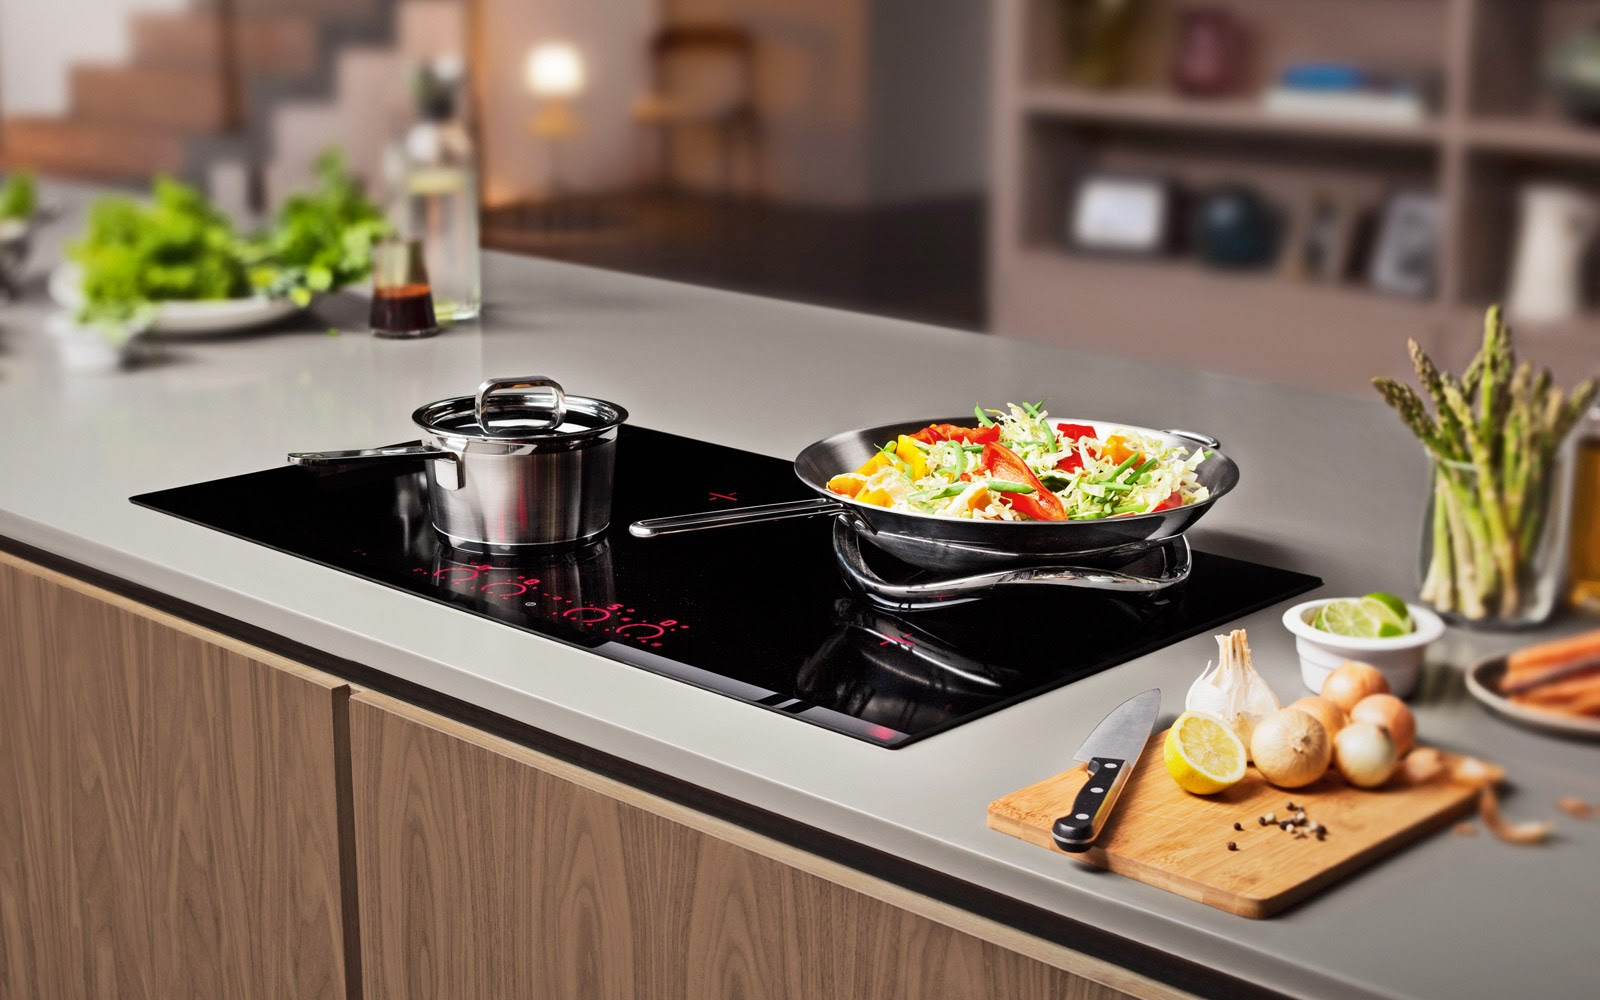 best frigidaire stove reviews u2014 top 10 models to consider